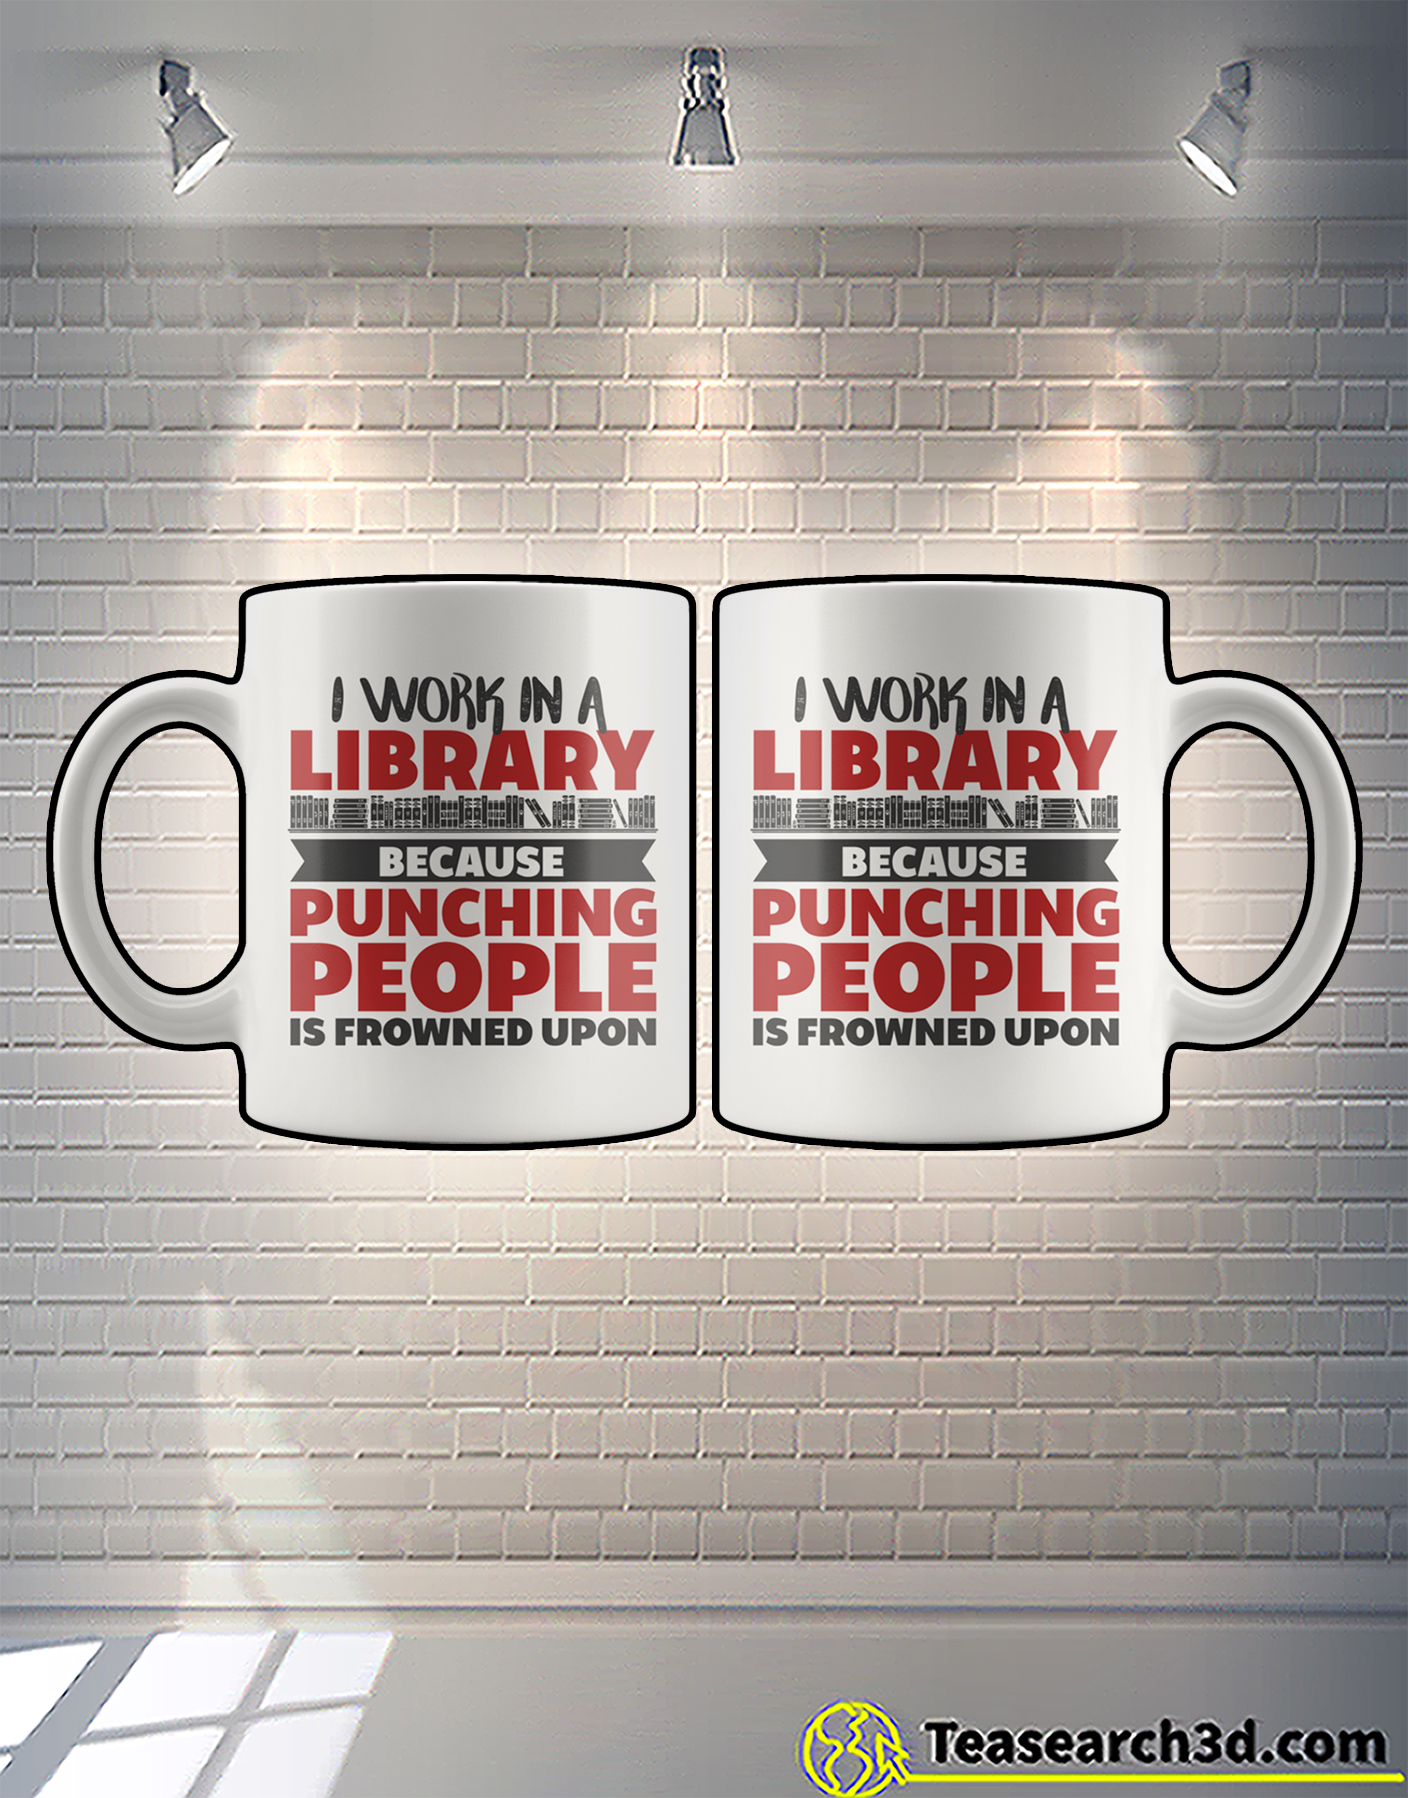 I work in a library because punching people is frowned upon mug 1